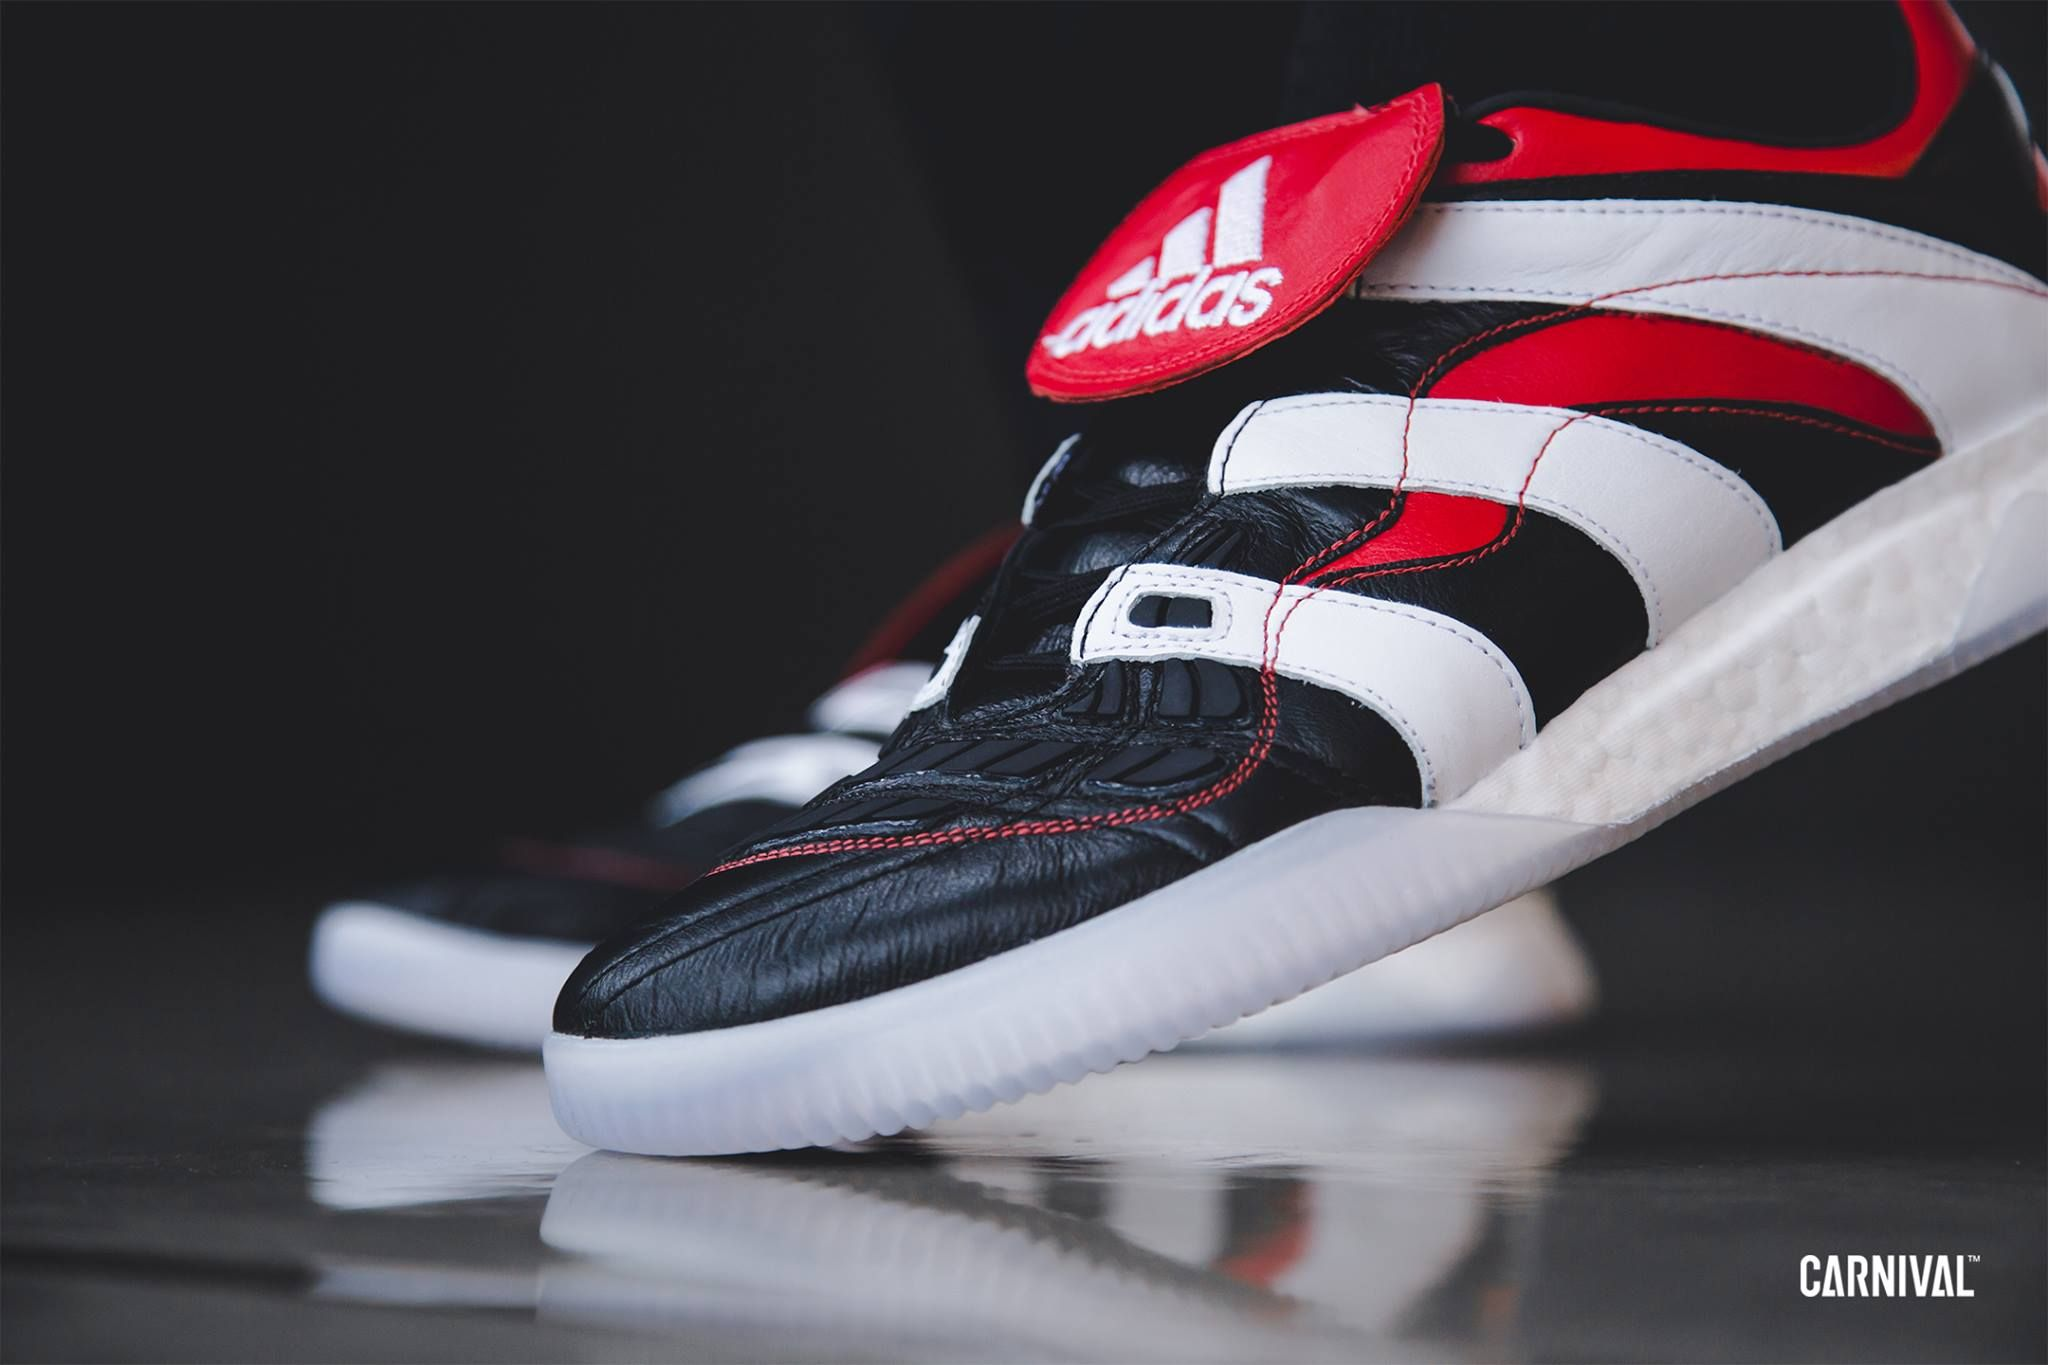 c4b27cb13f adidas 'Predator Accelerator Trainers' | Available on 23.08.2018 ...